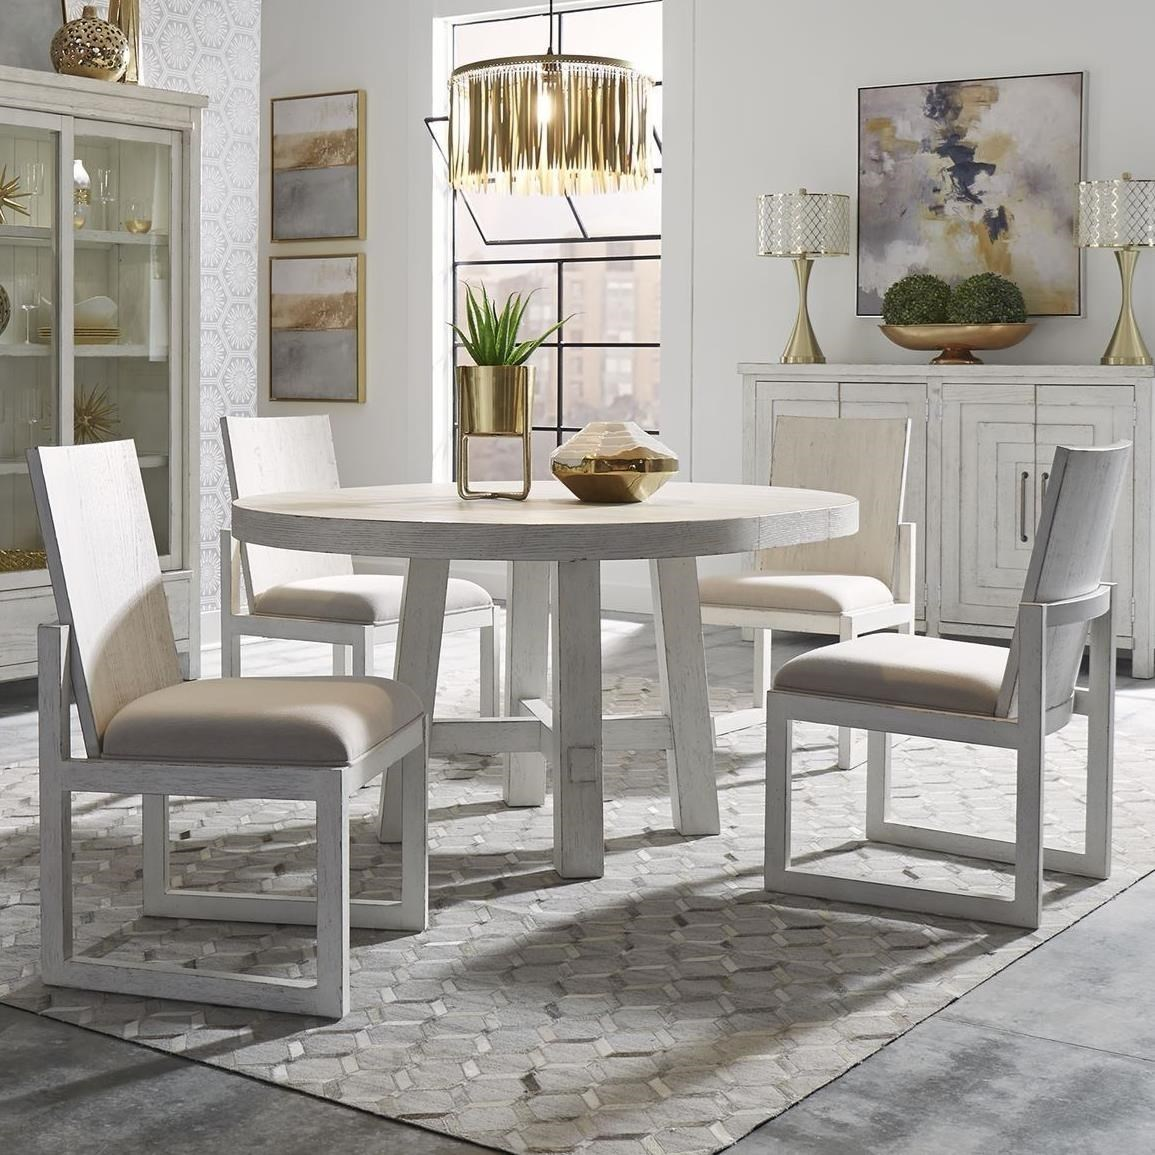 Modern Farmhouse 5-Piece Round Table and Chair Set by Libby at Walker's Furniture